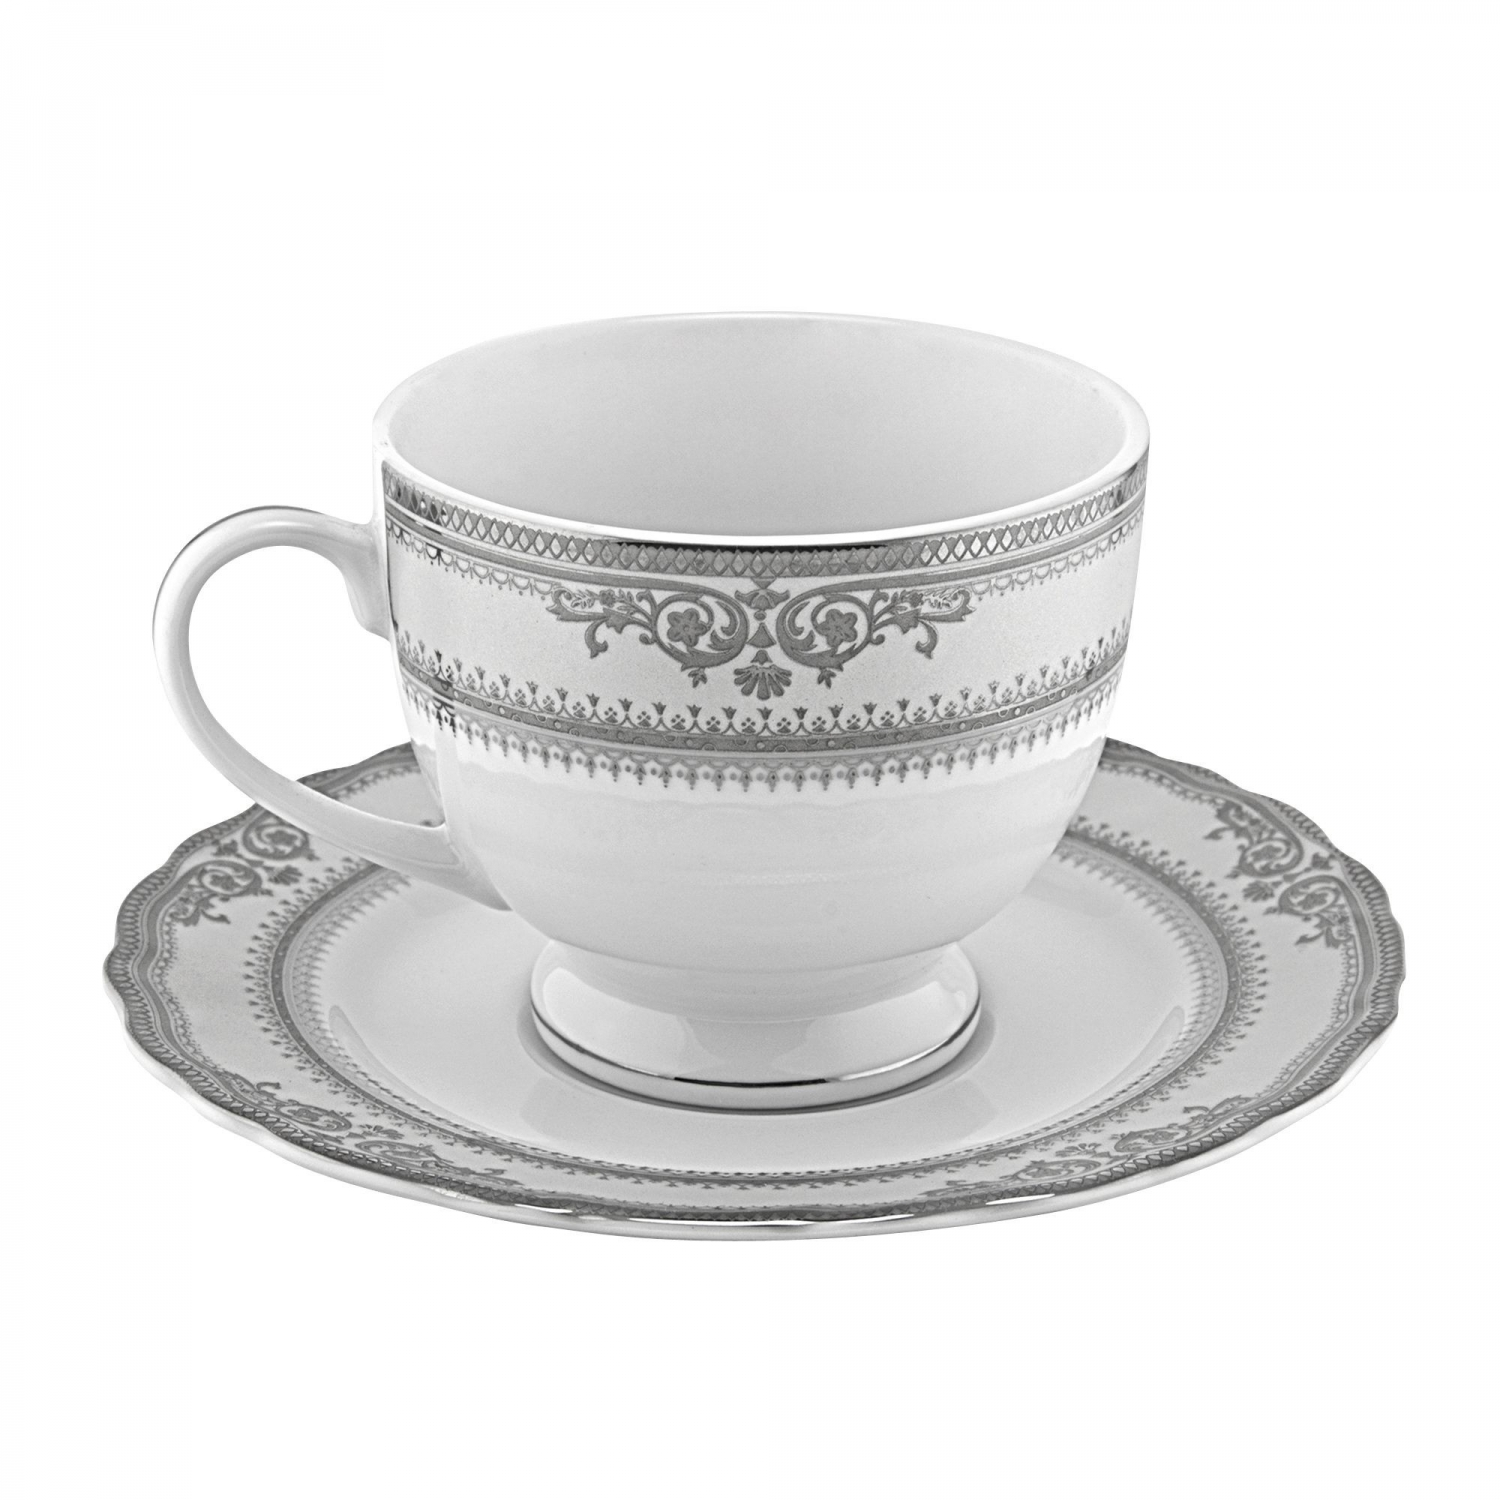 10 Strawberry Street VAN-9P Vanessa Platinum Cup and Saucer 8 oz.